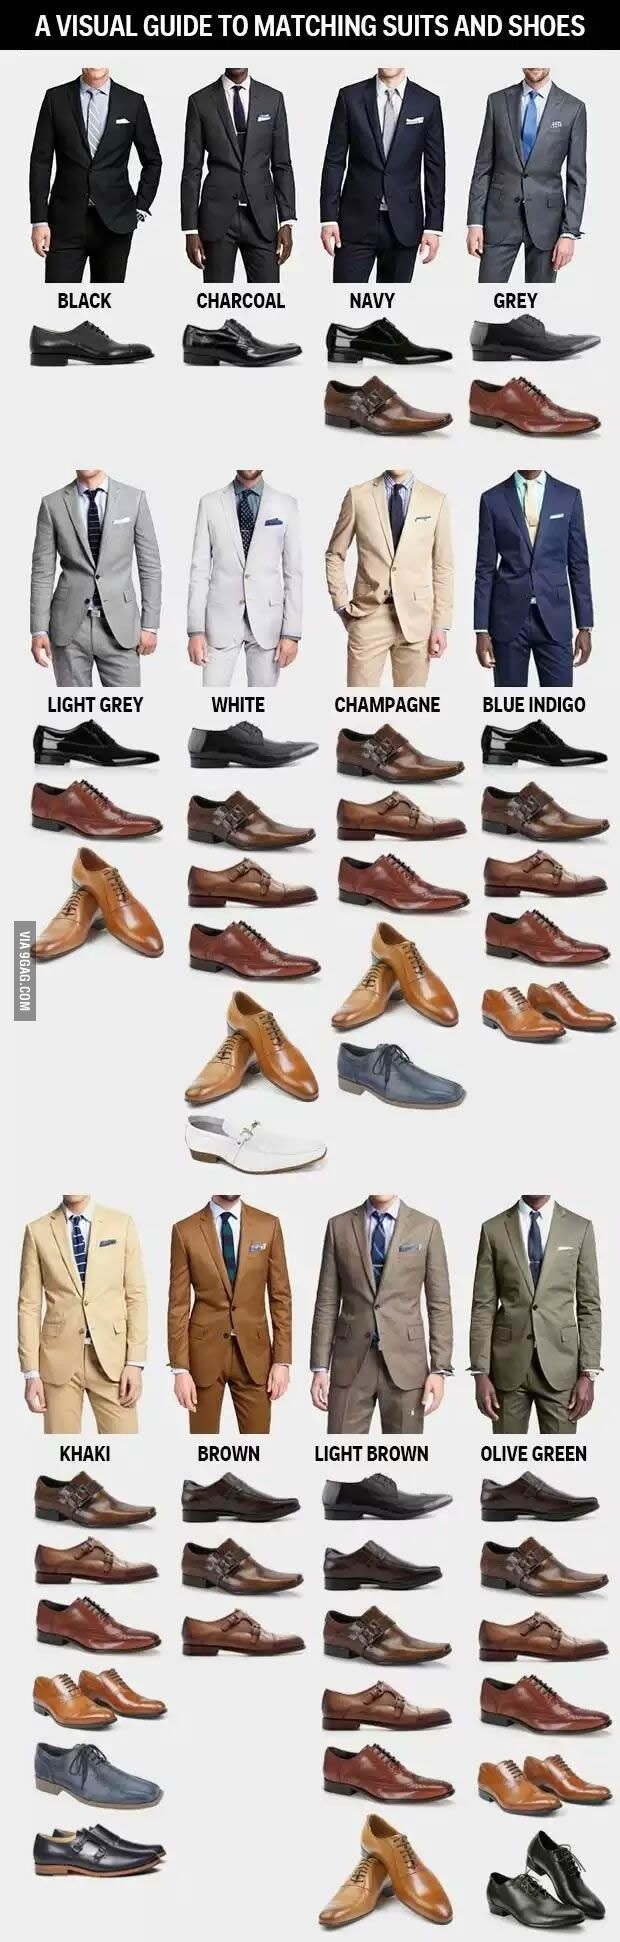 How to match the right footwear with your suit/outfit.